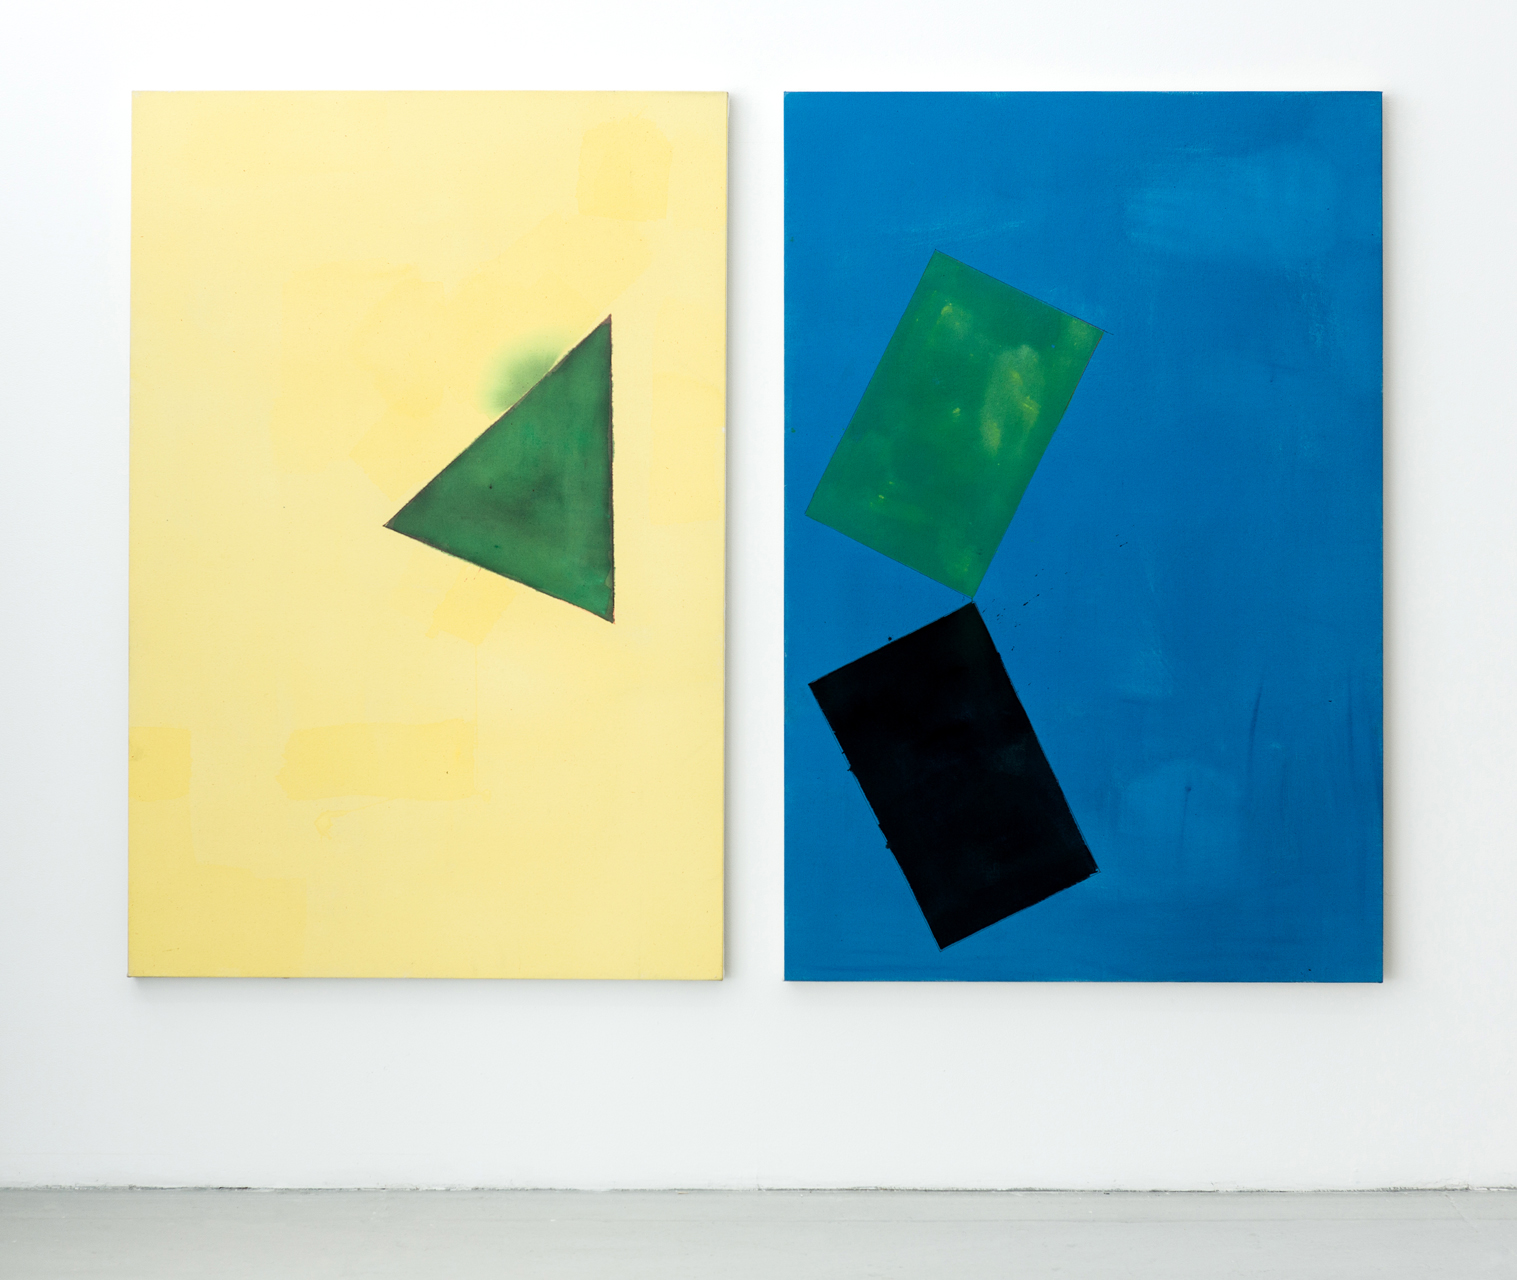 NON-IDEAL SPACE  2013  Acrylic and pencil on canvas  2 parts, each: 152.5 x 101.5 cm / 60 x 40 in